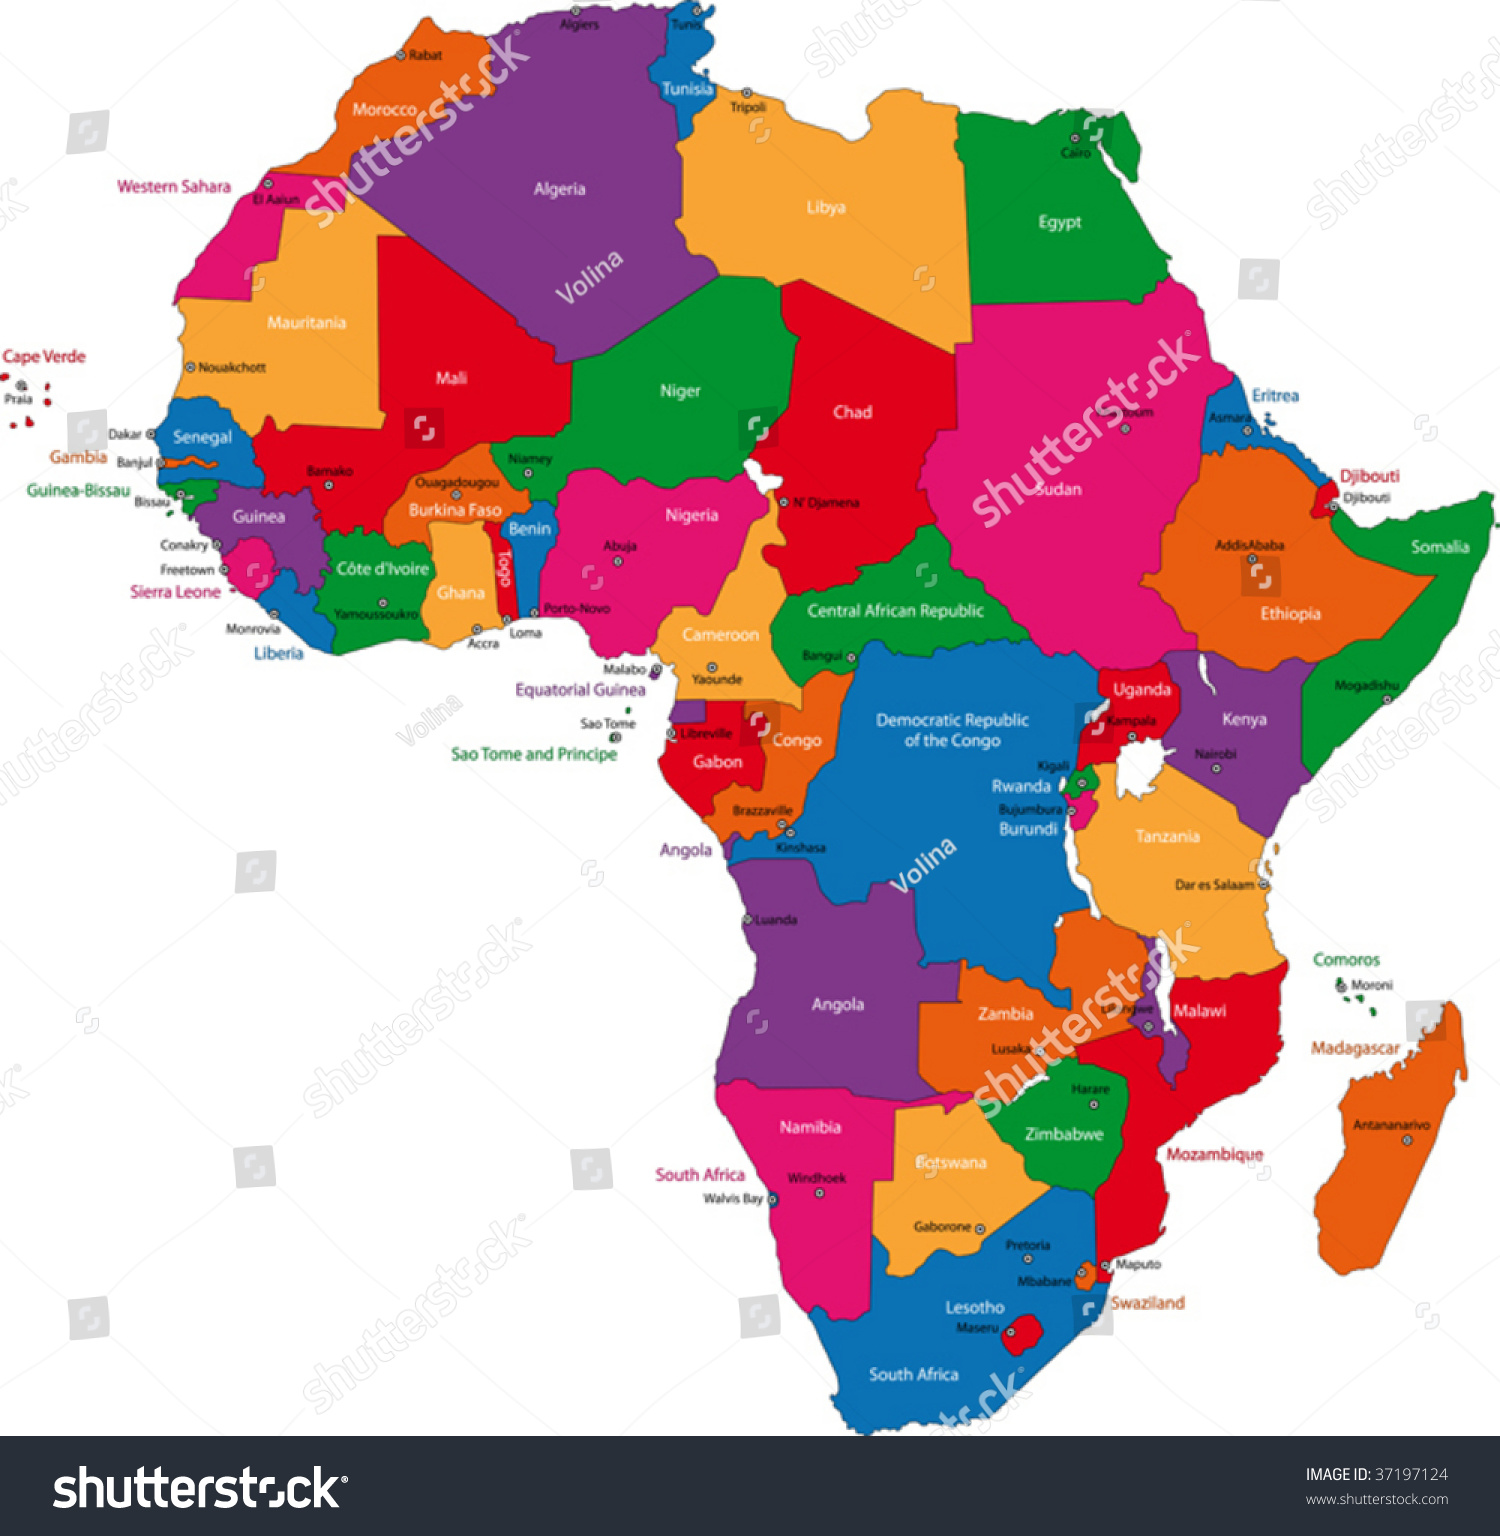 Royaltyfree Colorful Africa Map With Countries And - Africa map countries